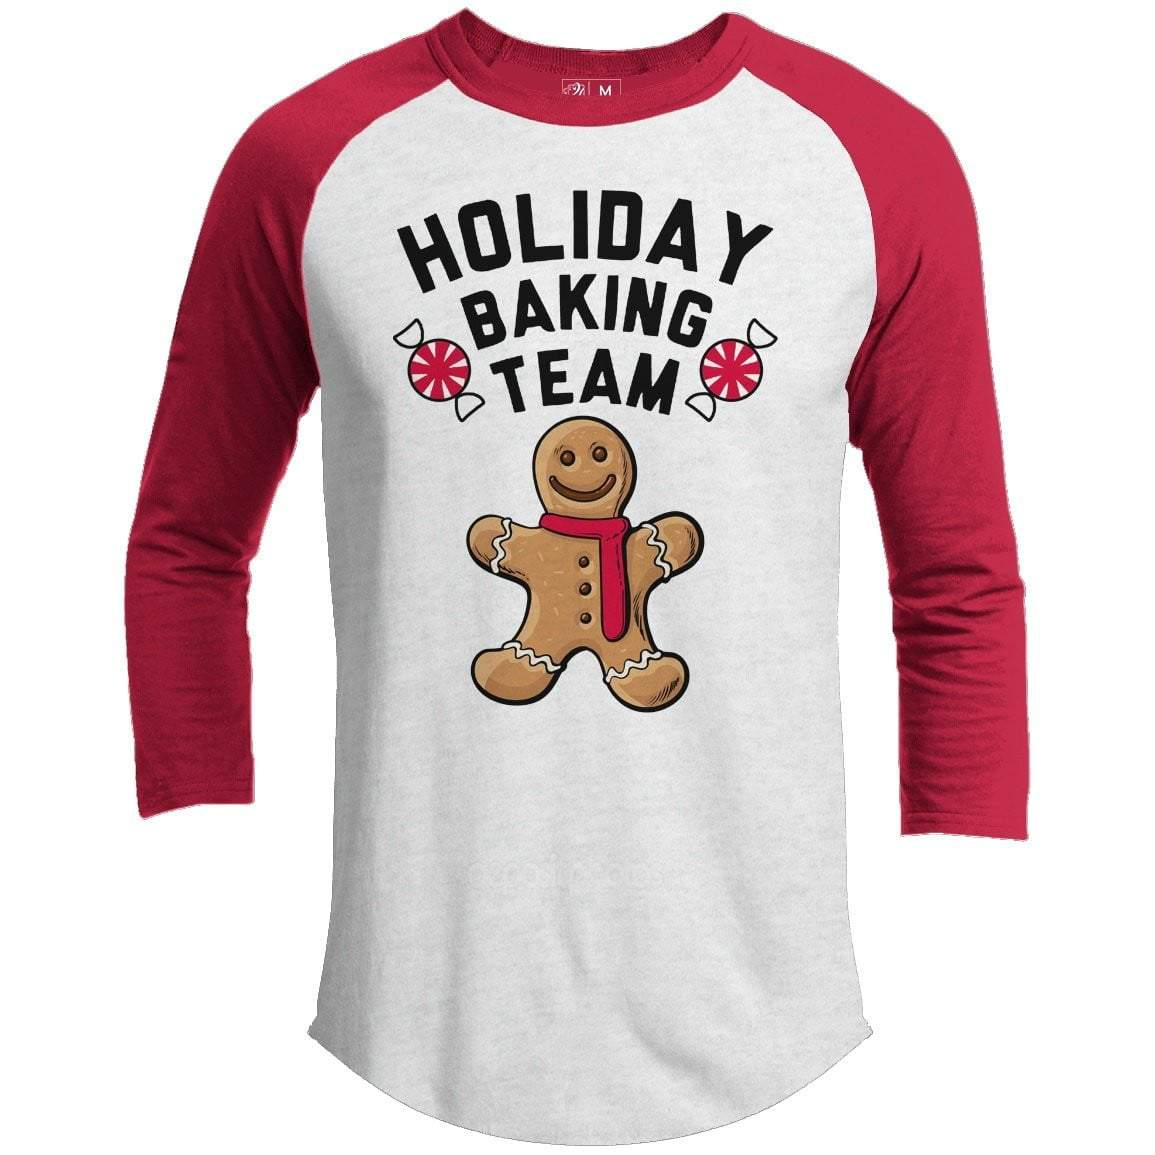 Holiday Baking Team Premium Christmas Raglan